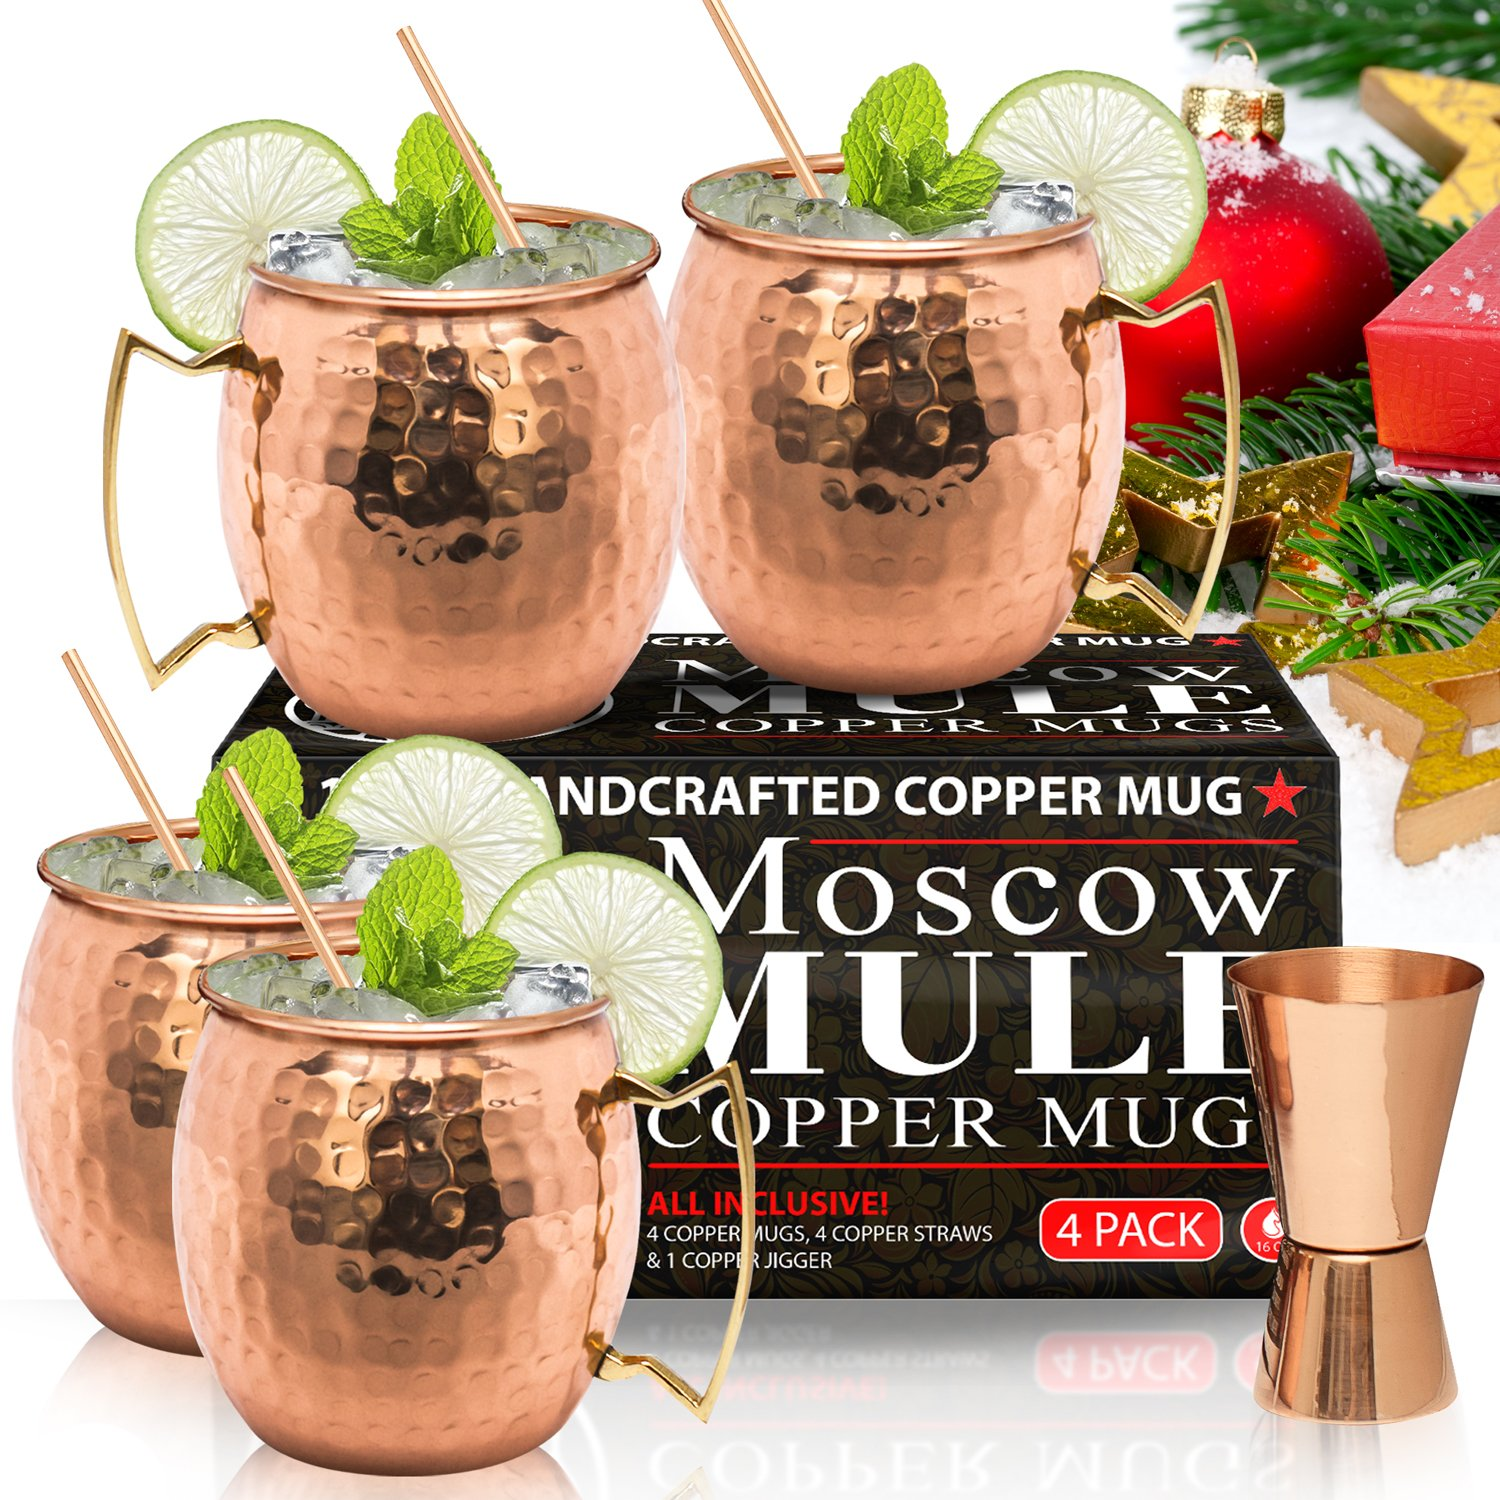 Moscow Mule Copper Mugs - Set of 4x 16oz Mugs And Copper Straws